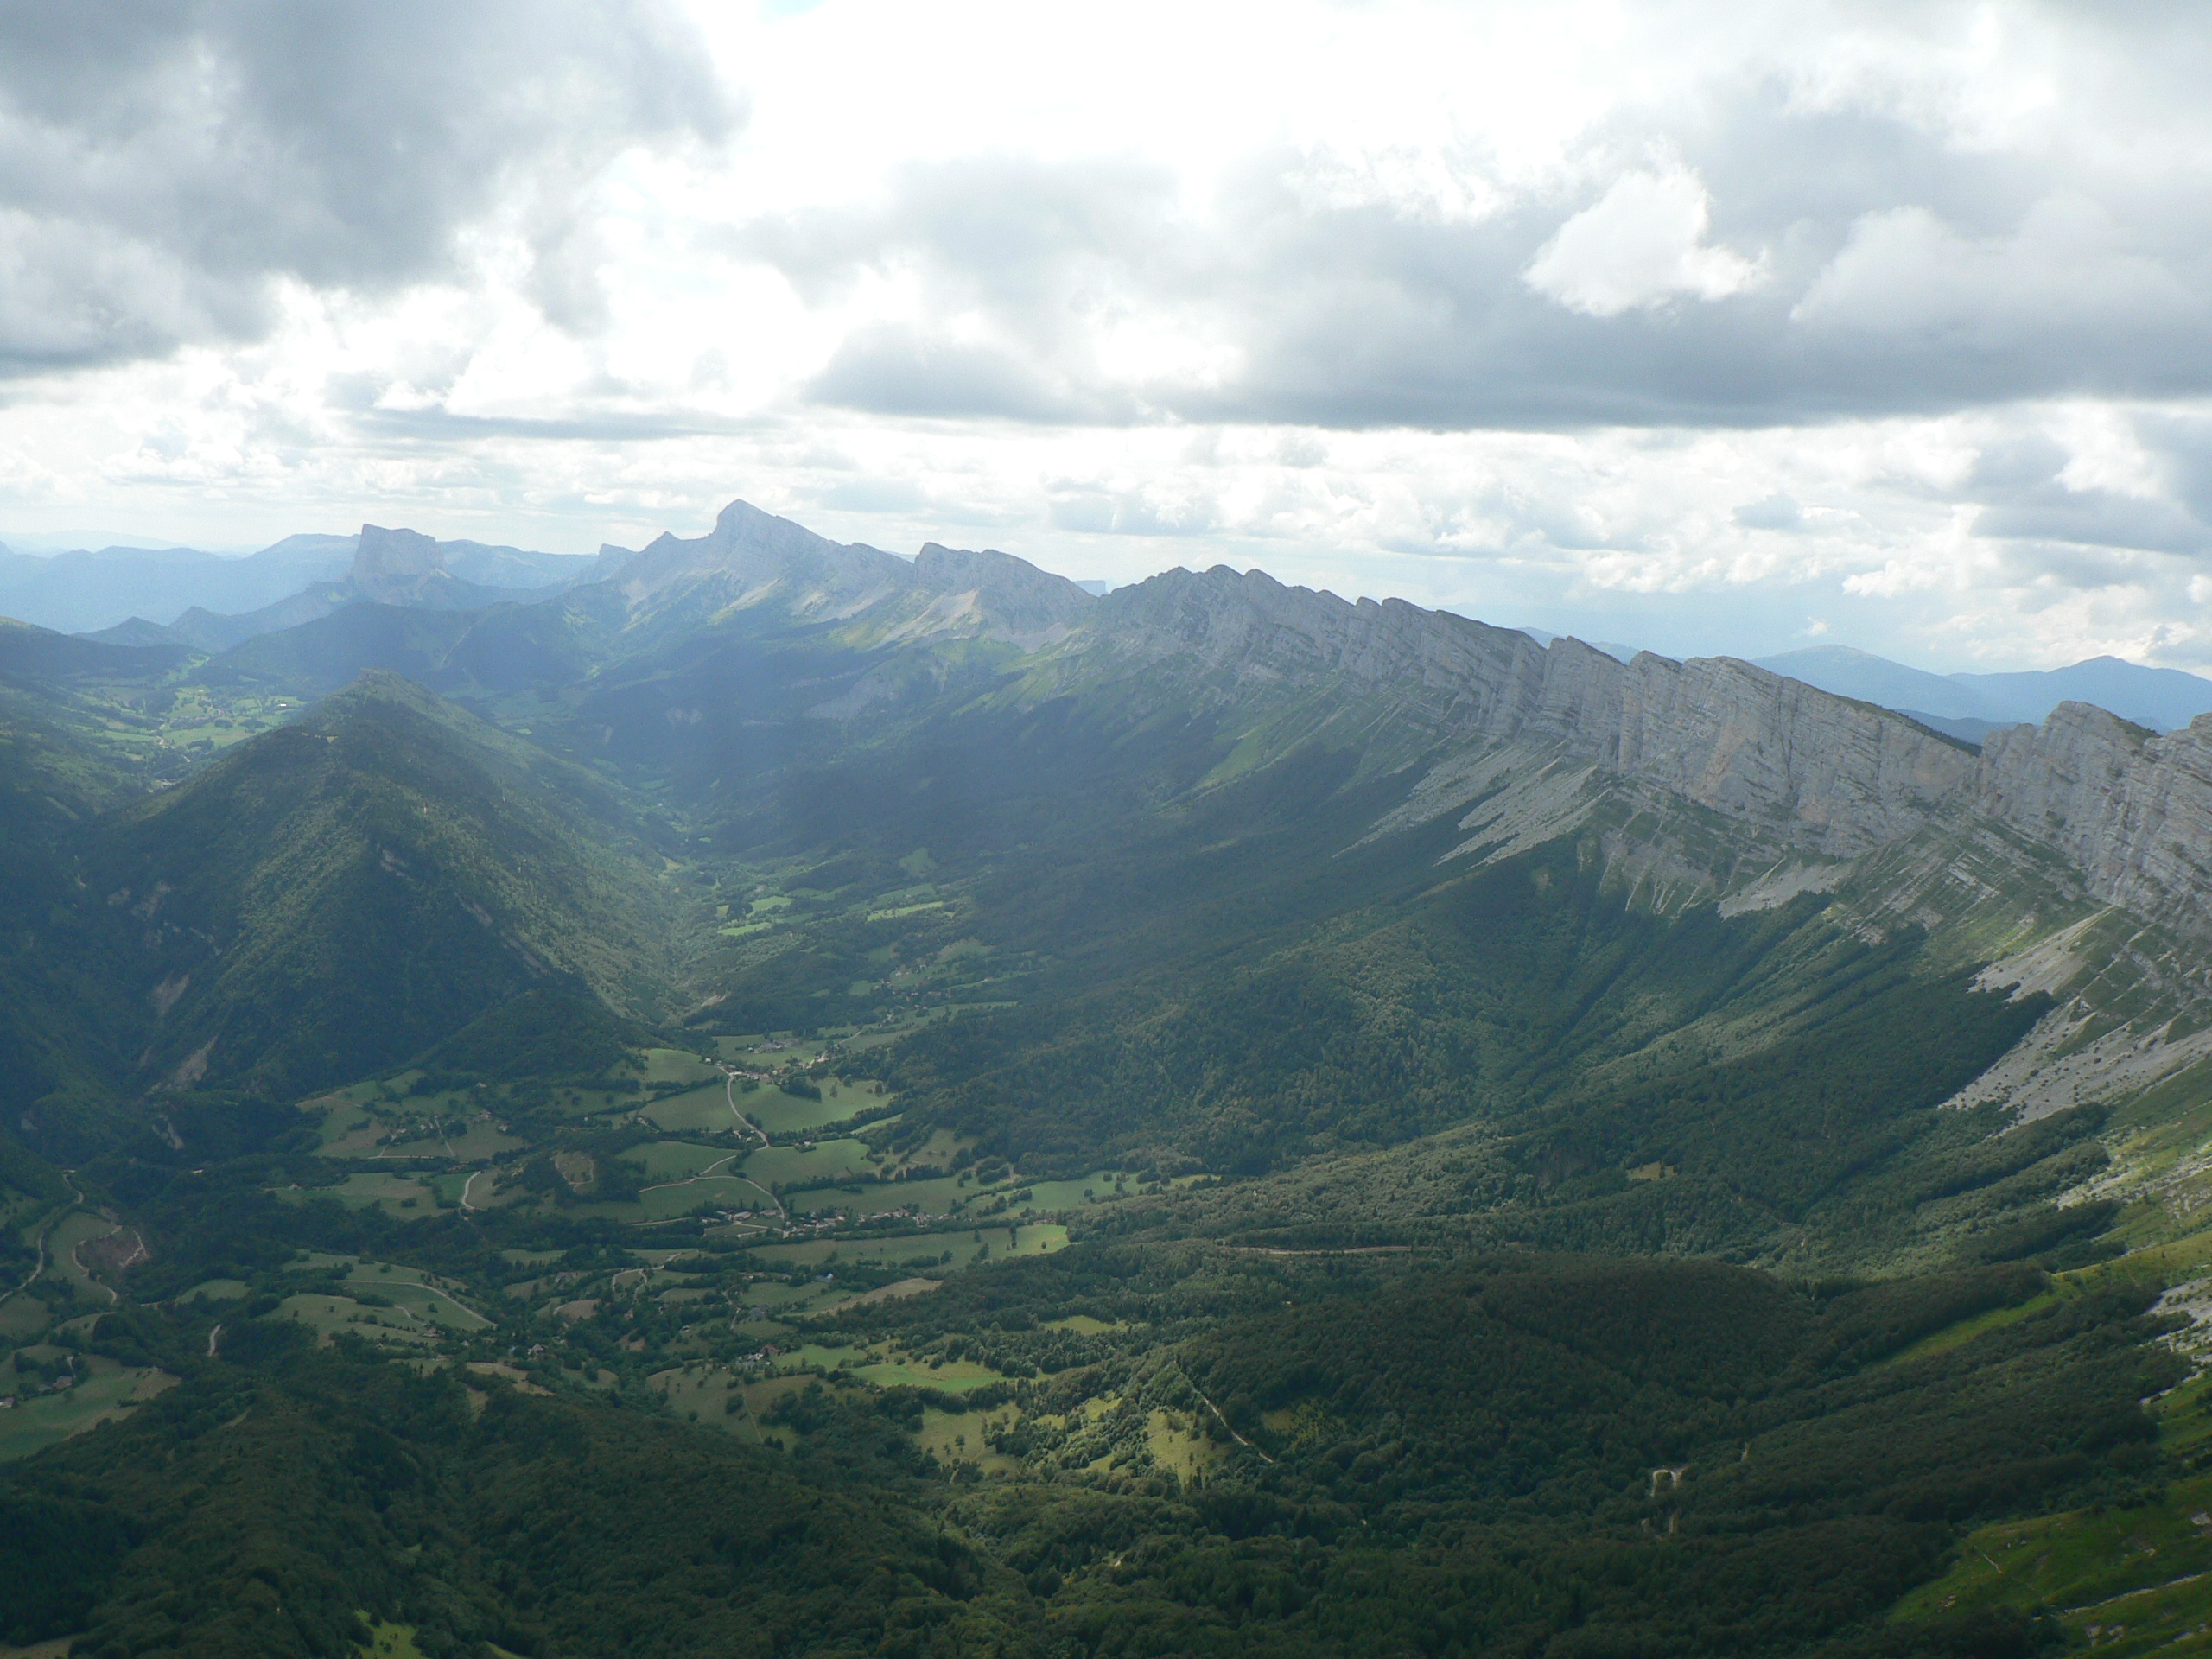 Looking southwards down the edge of the Vercors Plateau